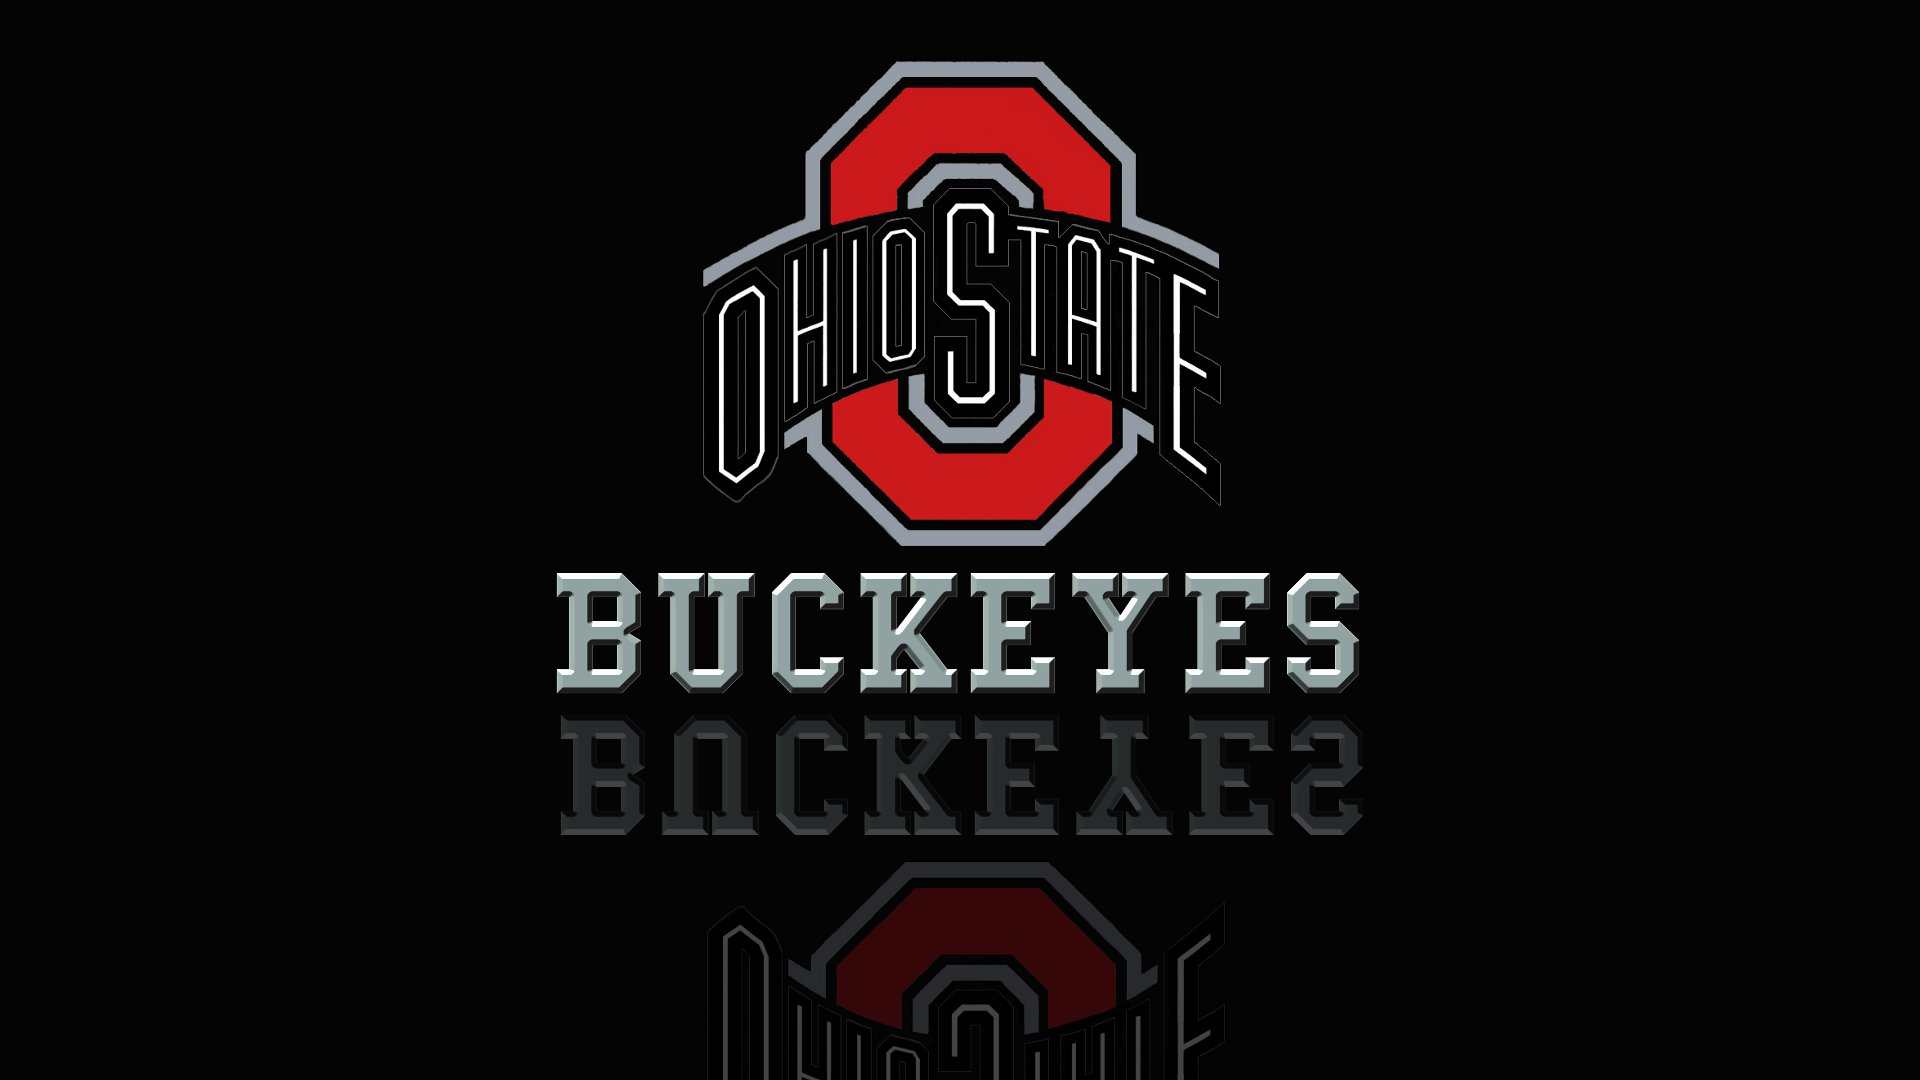 Ohio State Football images OSU Wallpaper 150 HD wallpaper and 1920x1080